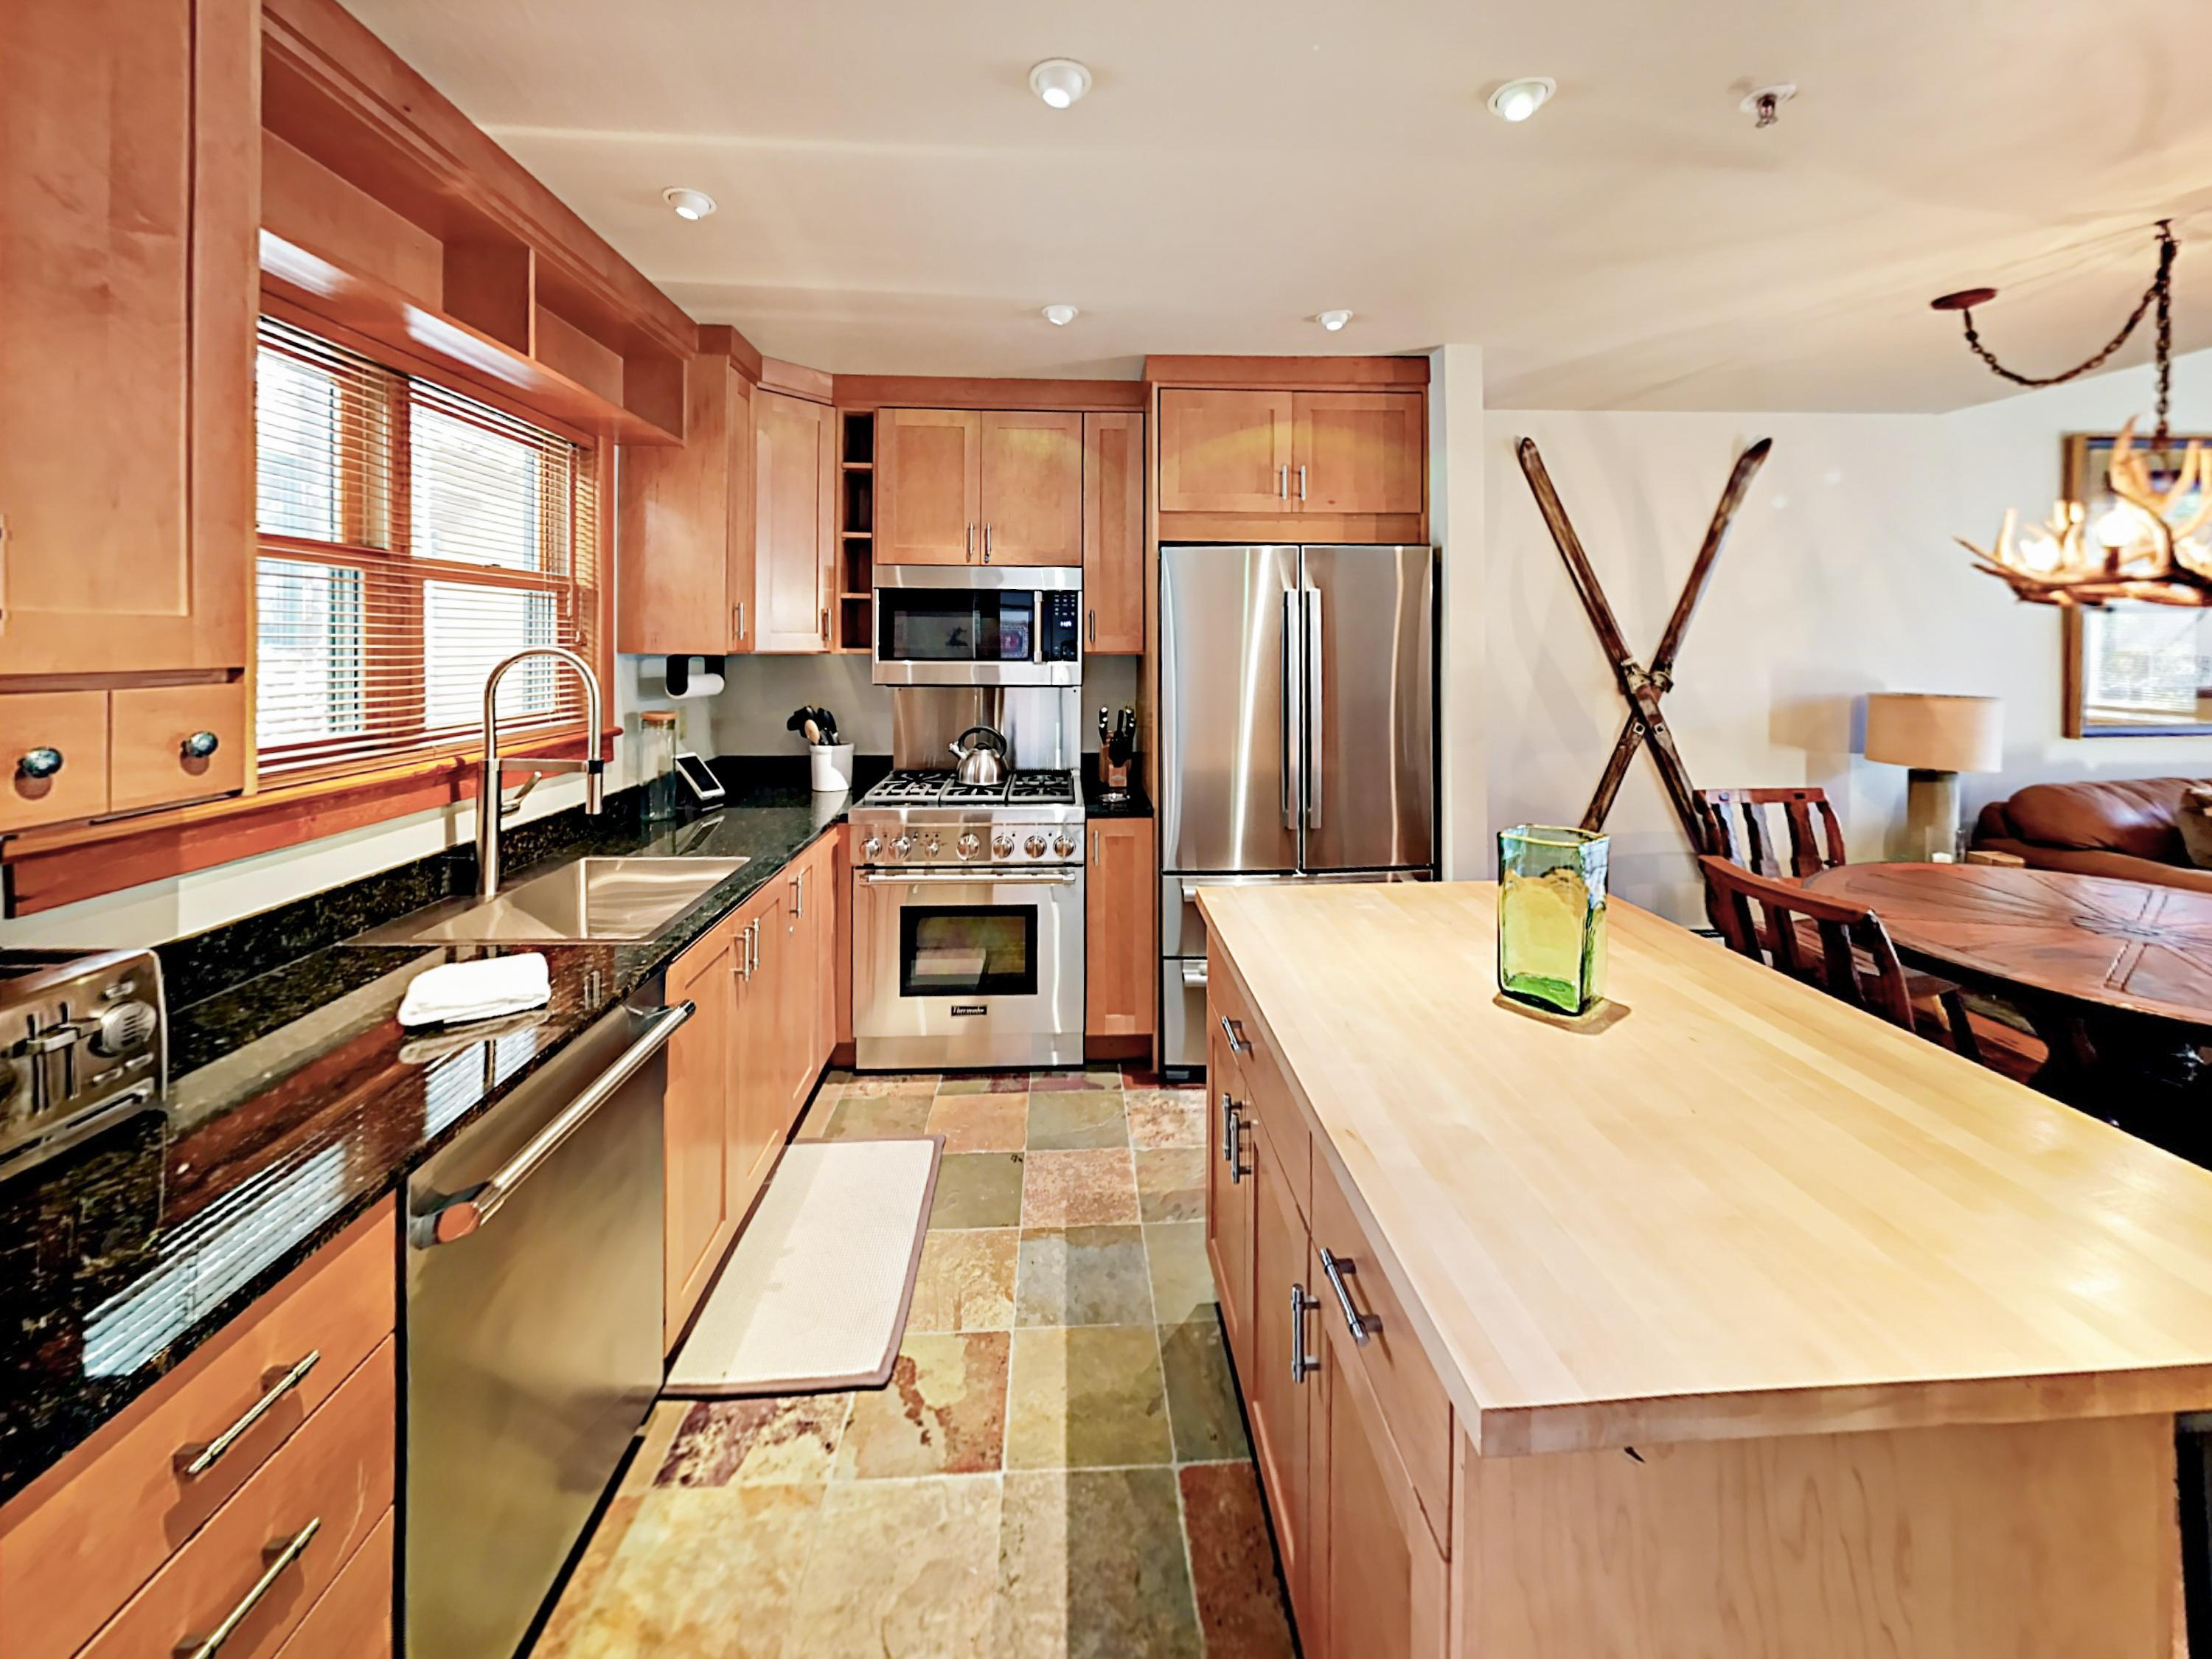 Stainless steel appliances include a gas range and a French door refrigerator.